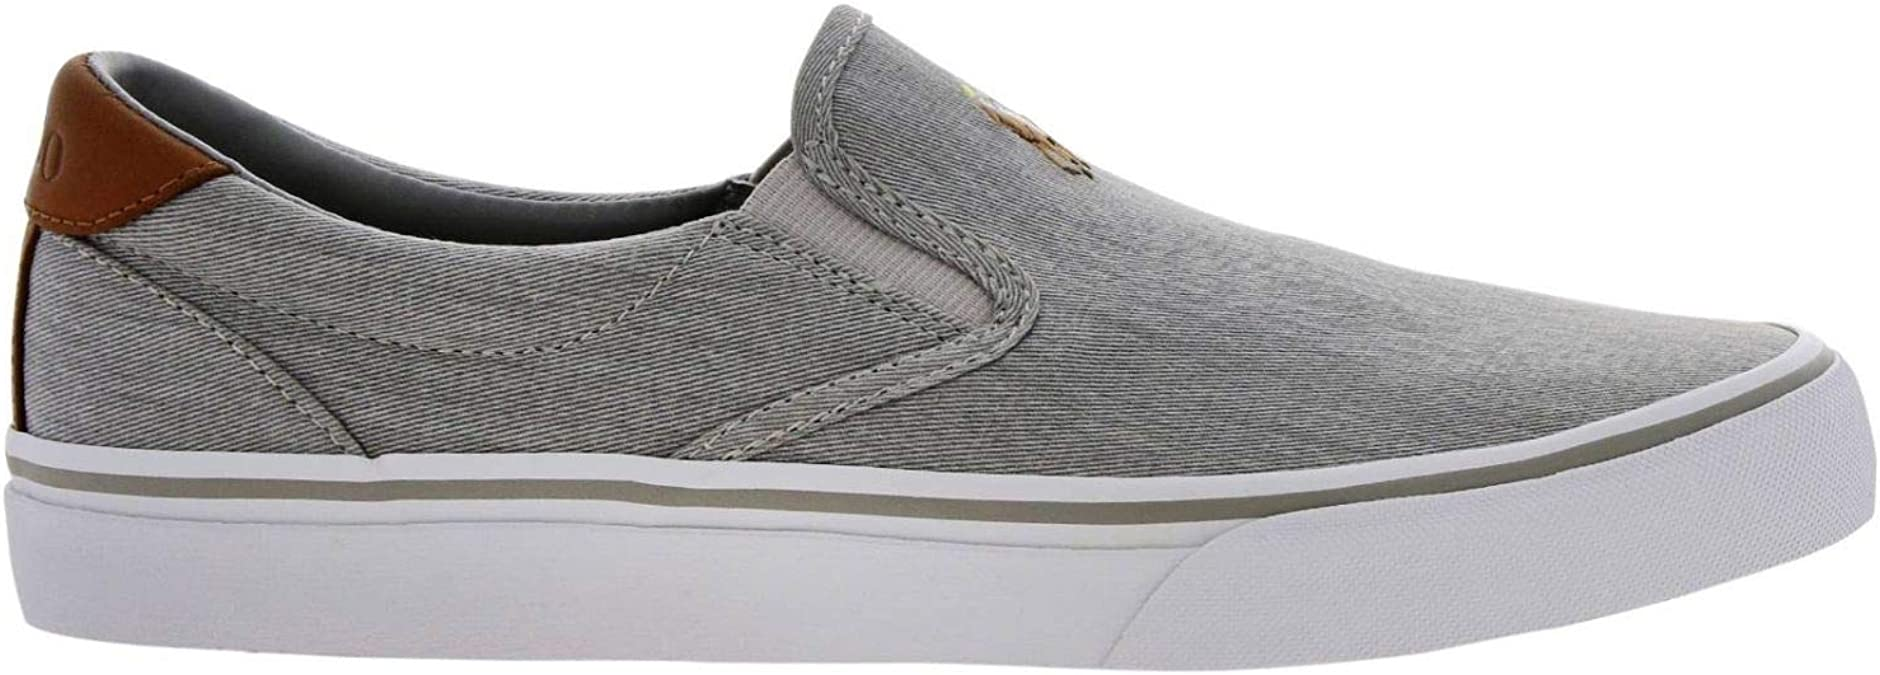 Zapatillas Polo Ralph Lauren Thompson - Color - Gris, Talla - 44 ...